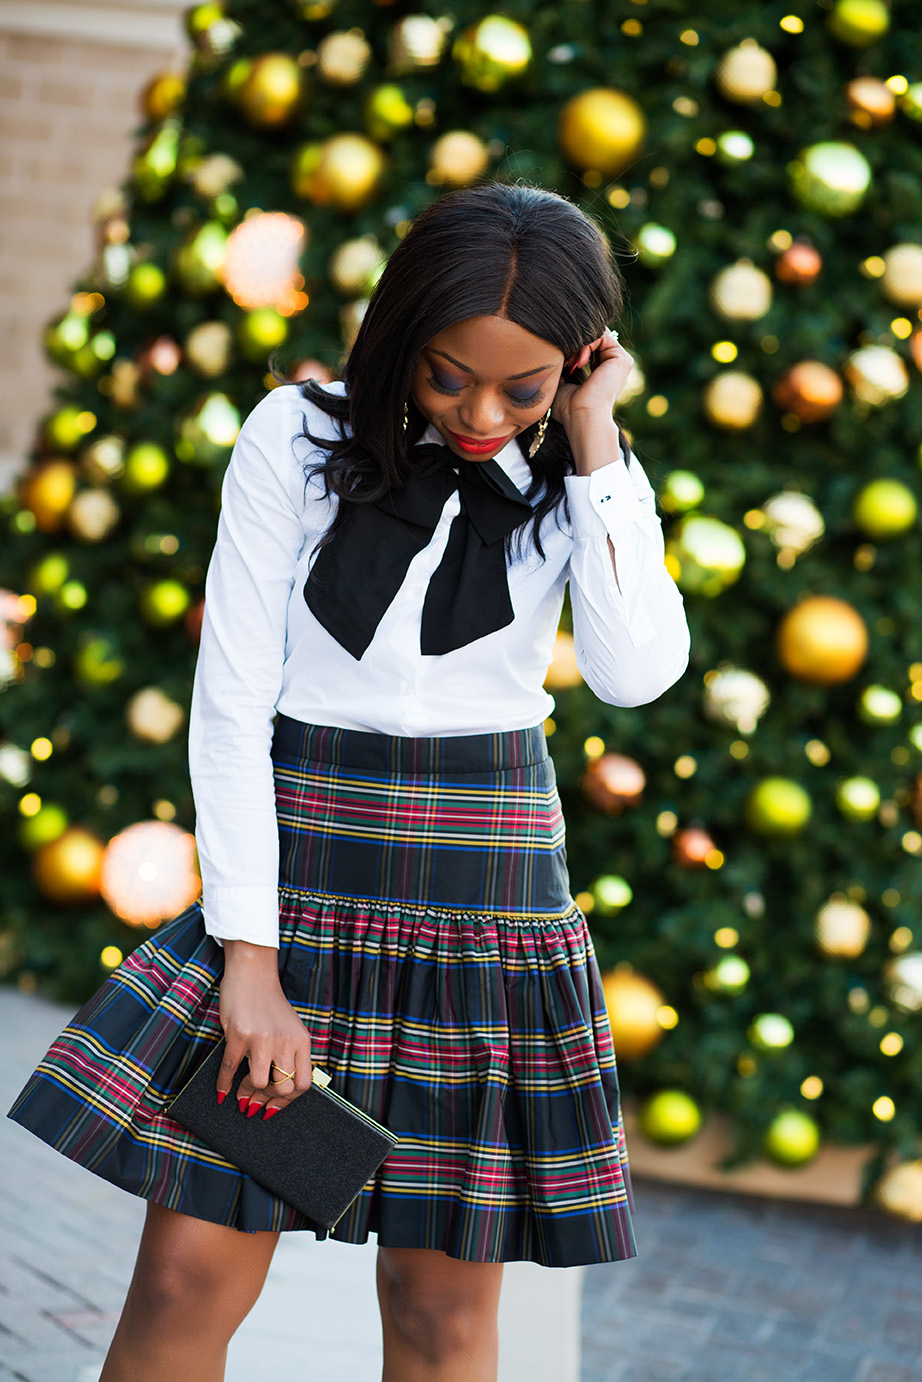 Plaid skirt, www.jadore-fashion.com